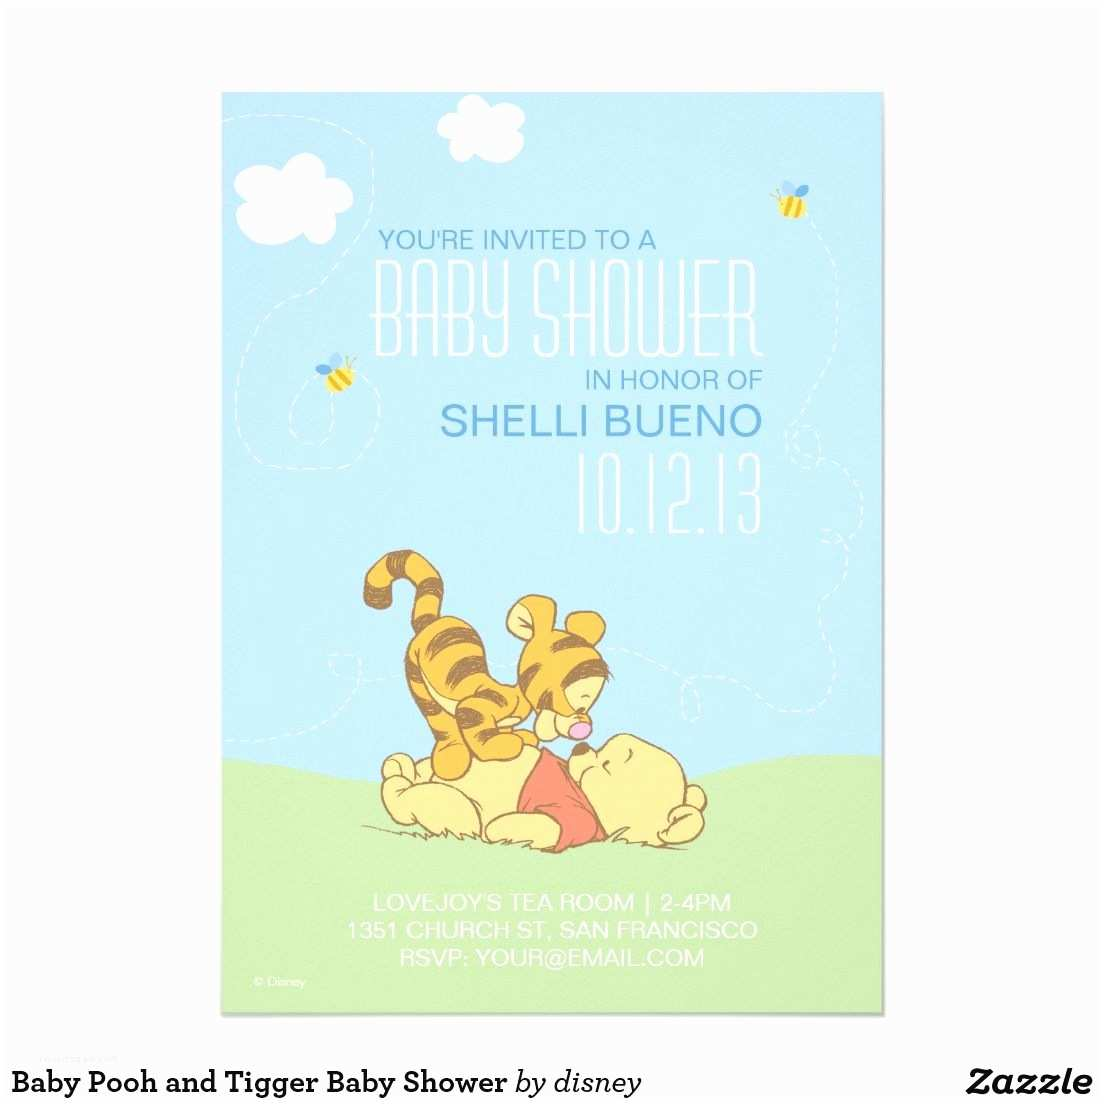 Disney Baby Shower Invitations Baby Pooh and Tigger Baby Shower Card